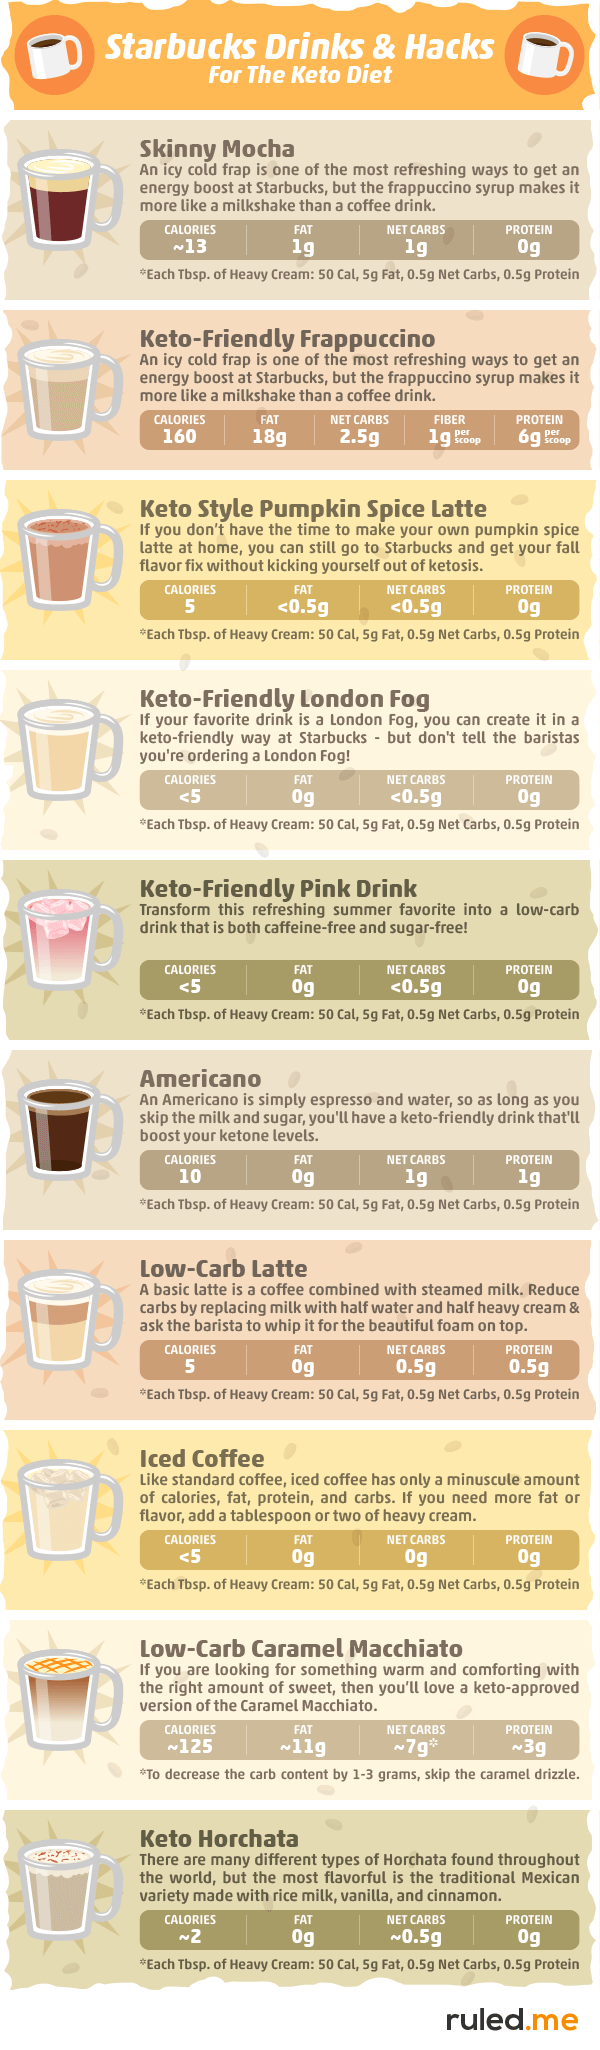 Keto Drinks at Starbucks